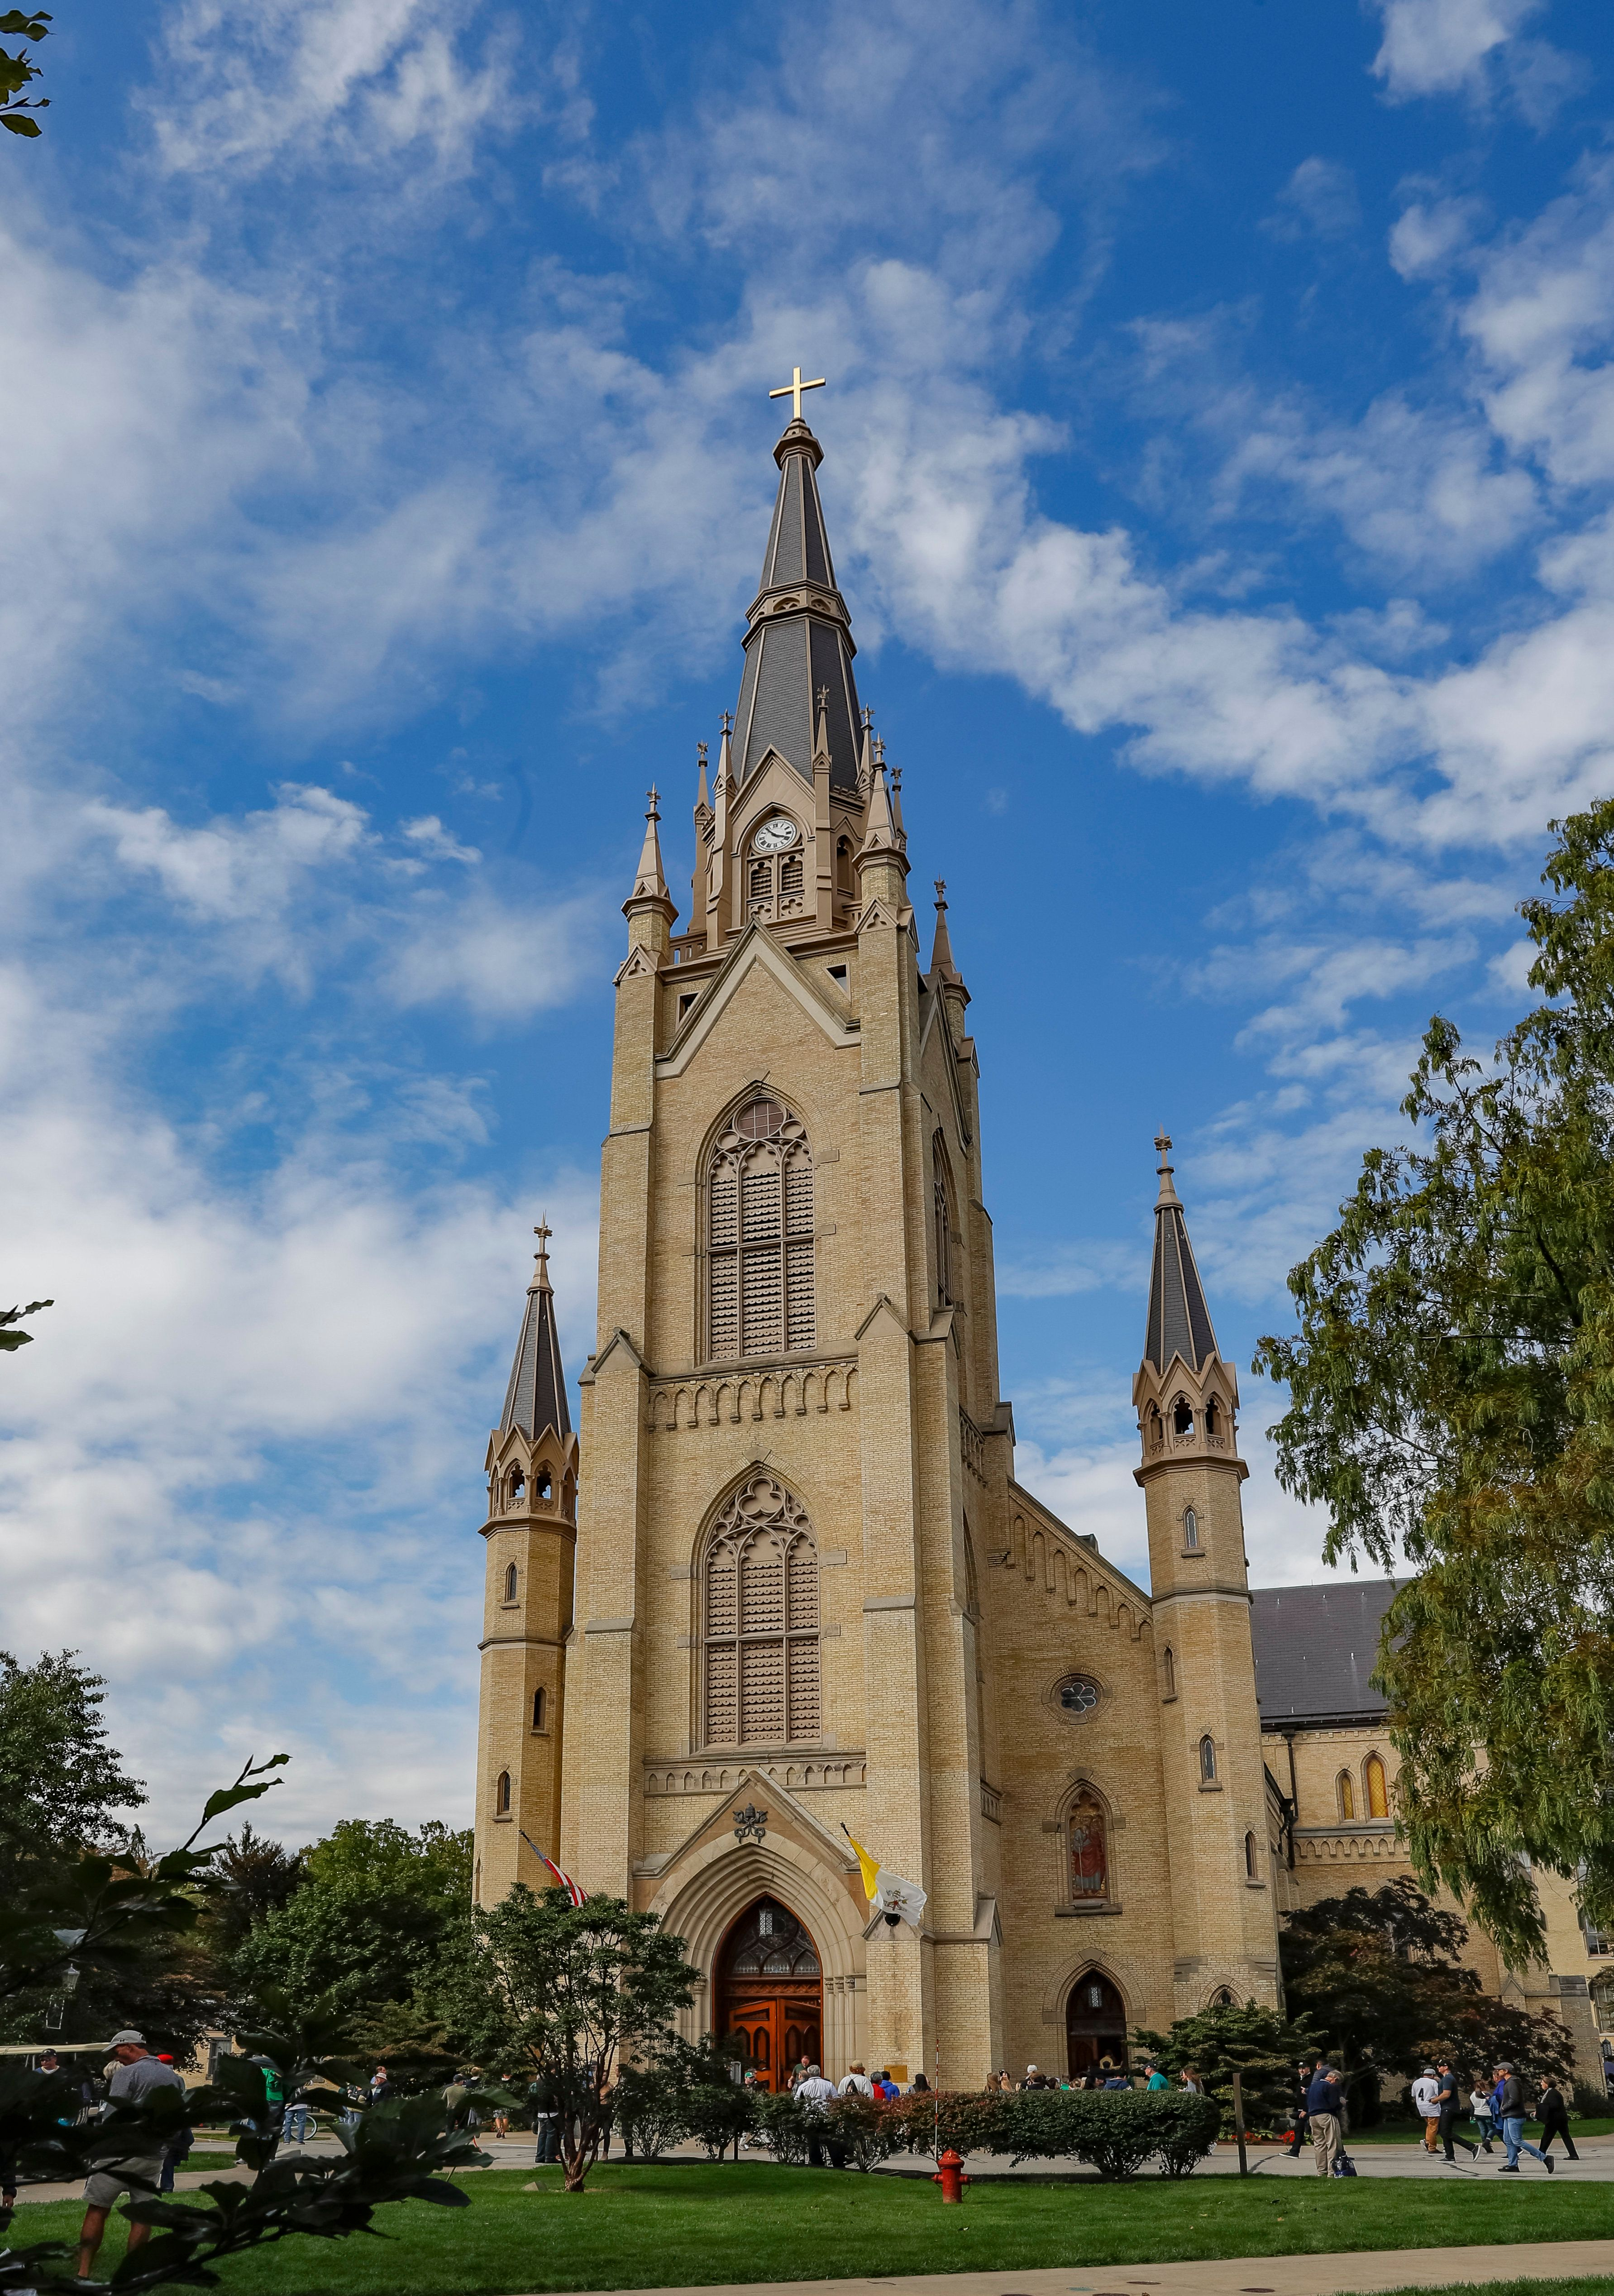 SOUTH BEND, IN - SEPTEMBER 29: The Basilica of the Sacred Heart is seen on the campus of Notre Dame University before the Notre Dame Fighting Irish game against Stanford Cardinal at Notre Dame Stadium on September 29, 2018 in South Bend, Indiana. (Photo by Michael Hickey/Getty Images)